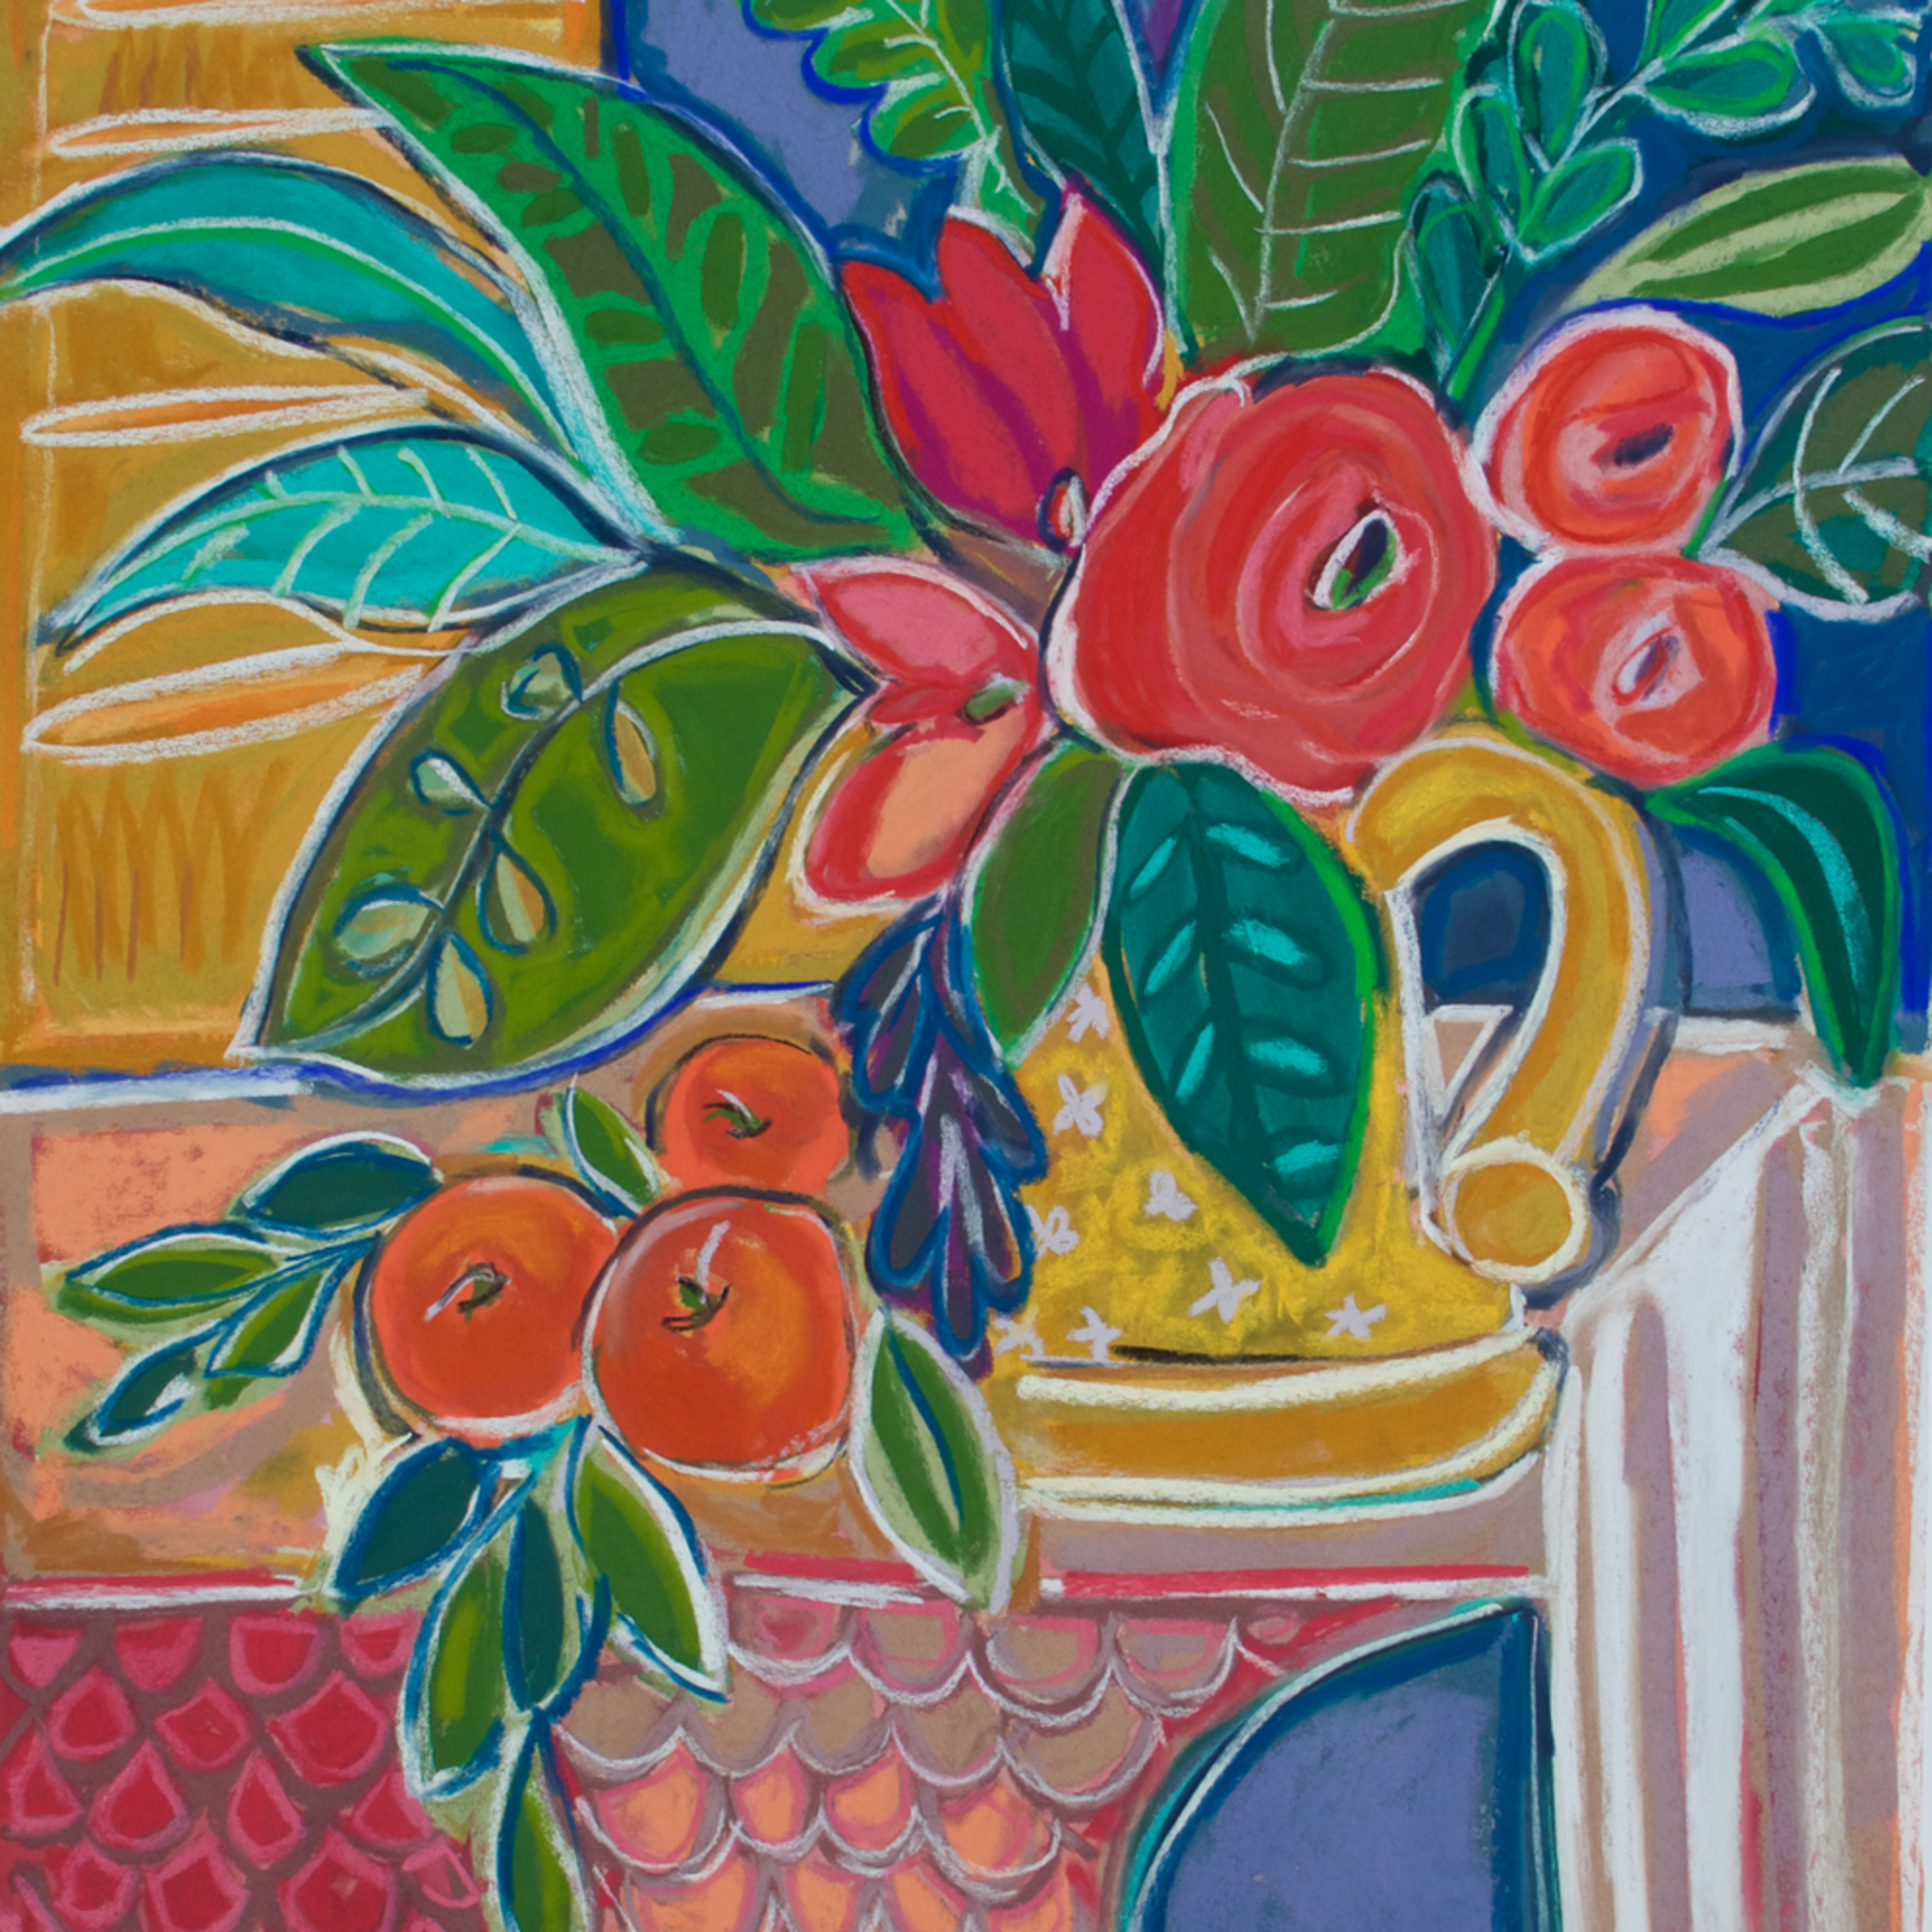 Floral with oranges rq5zdr